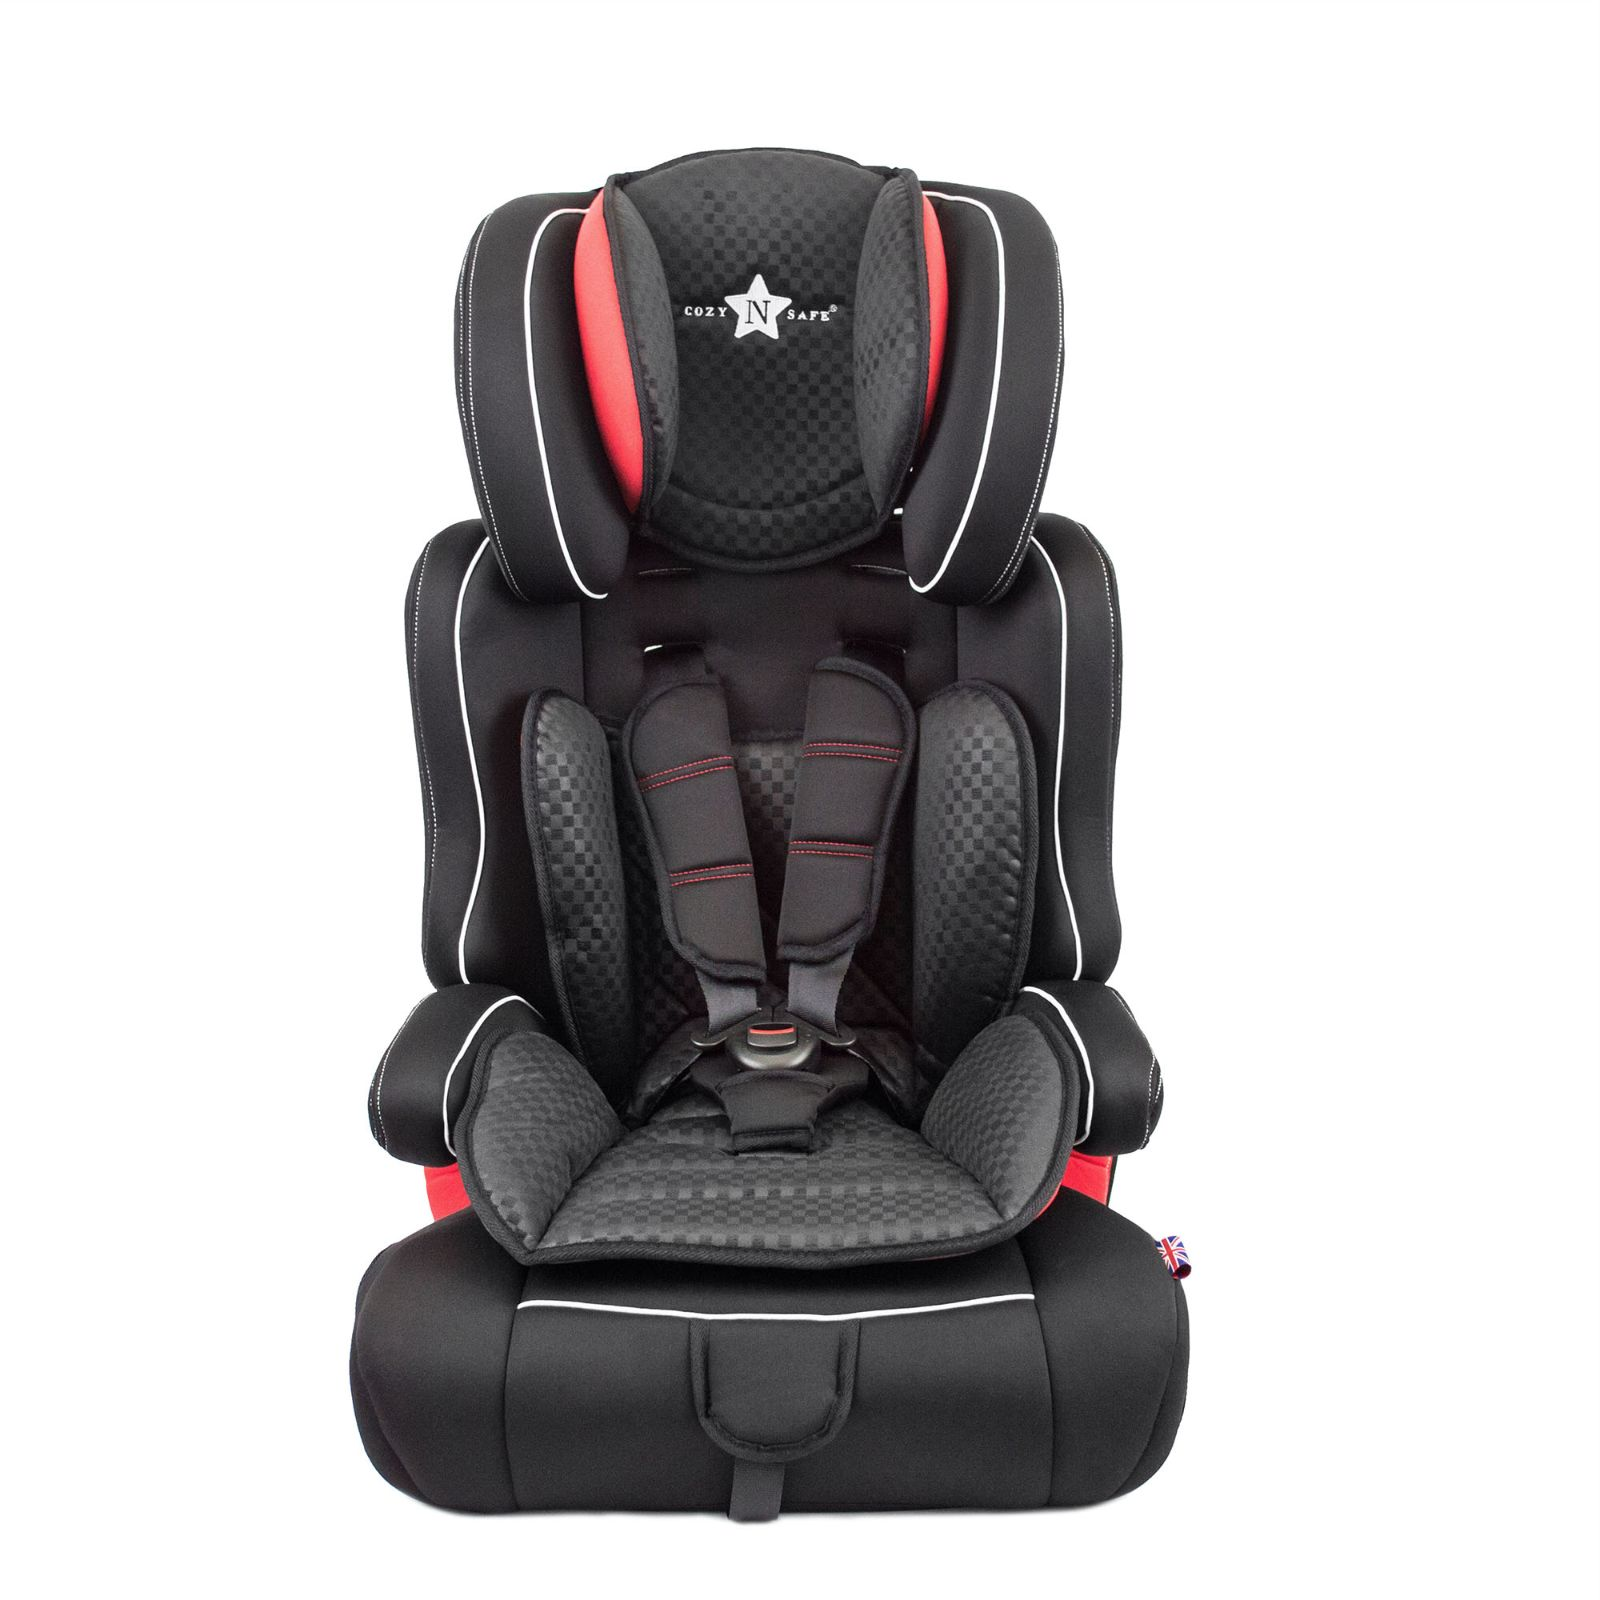 cozy n safe everest group 1 2 3 car seat black red buy at online4baby. Black Bedroom Furniture Sets. Home Design Ideas